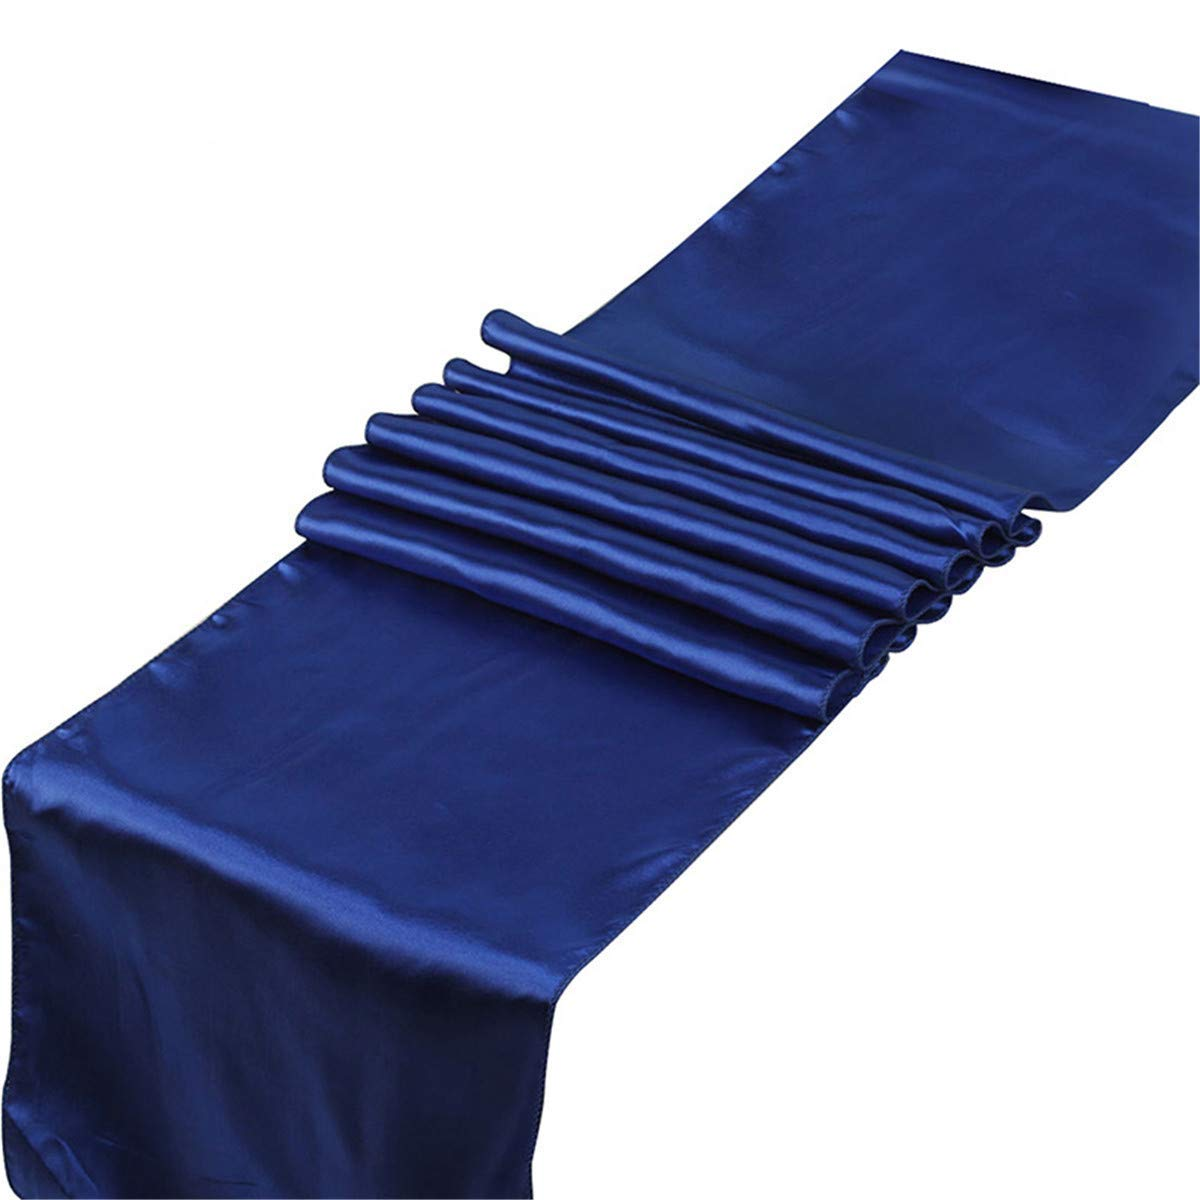 ECYC 1 Piece Satin Table Runner 12 x 108 inch for Wedding Party Festival Decoration, Royal Blue